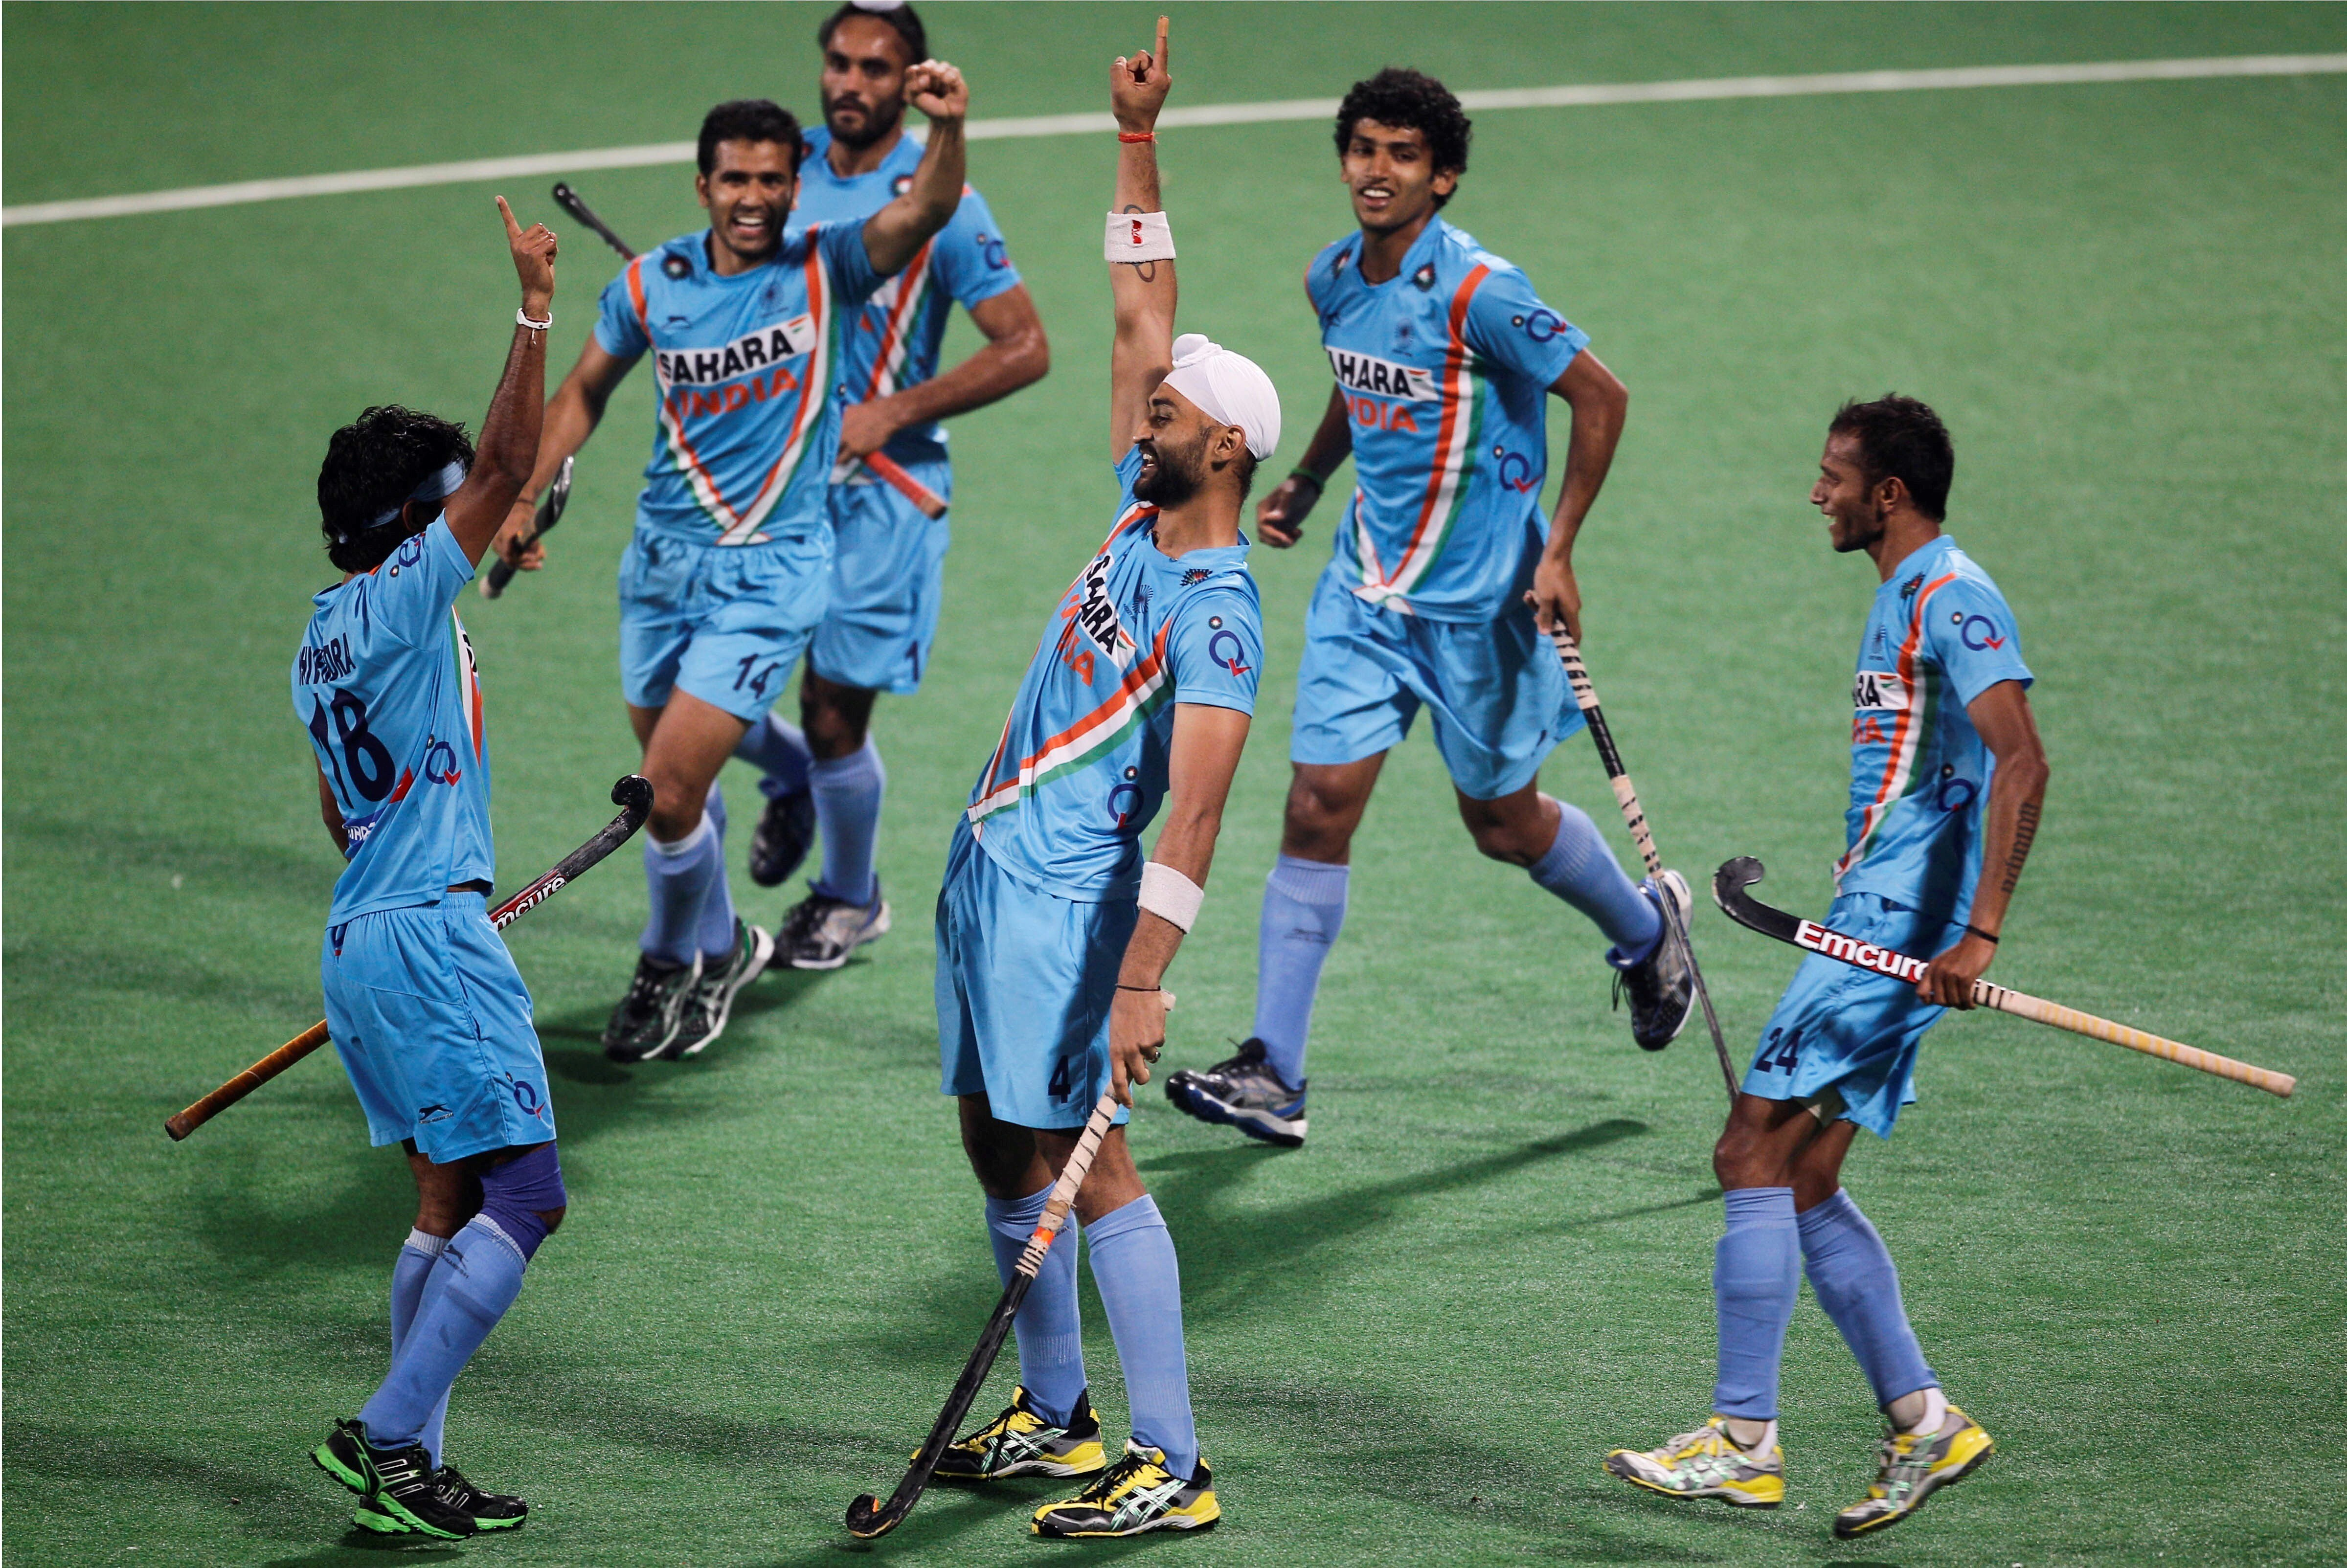 Indian Hocky Player Celebrate After Goal Hd Wallpapers